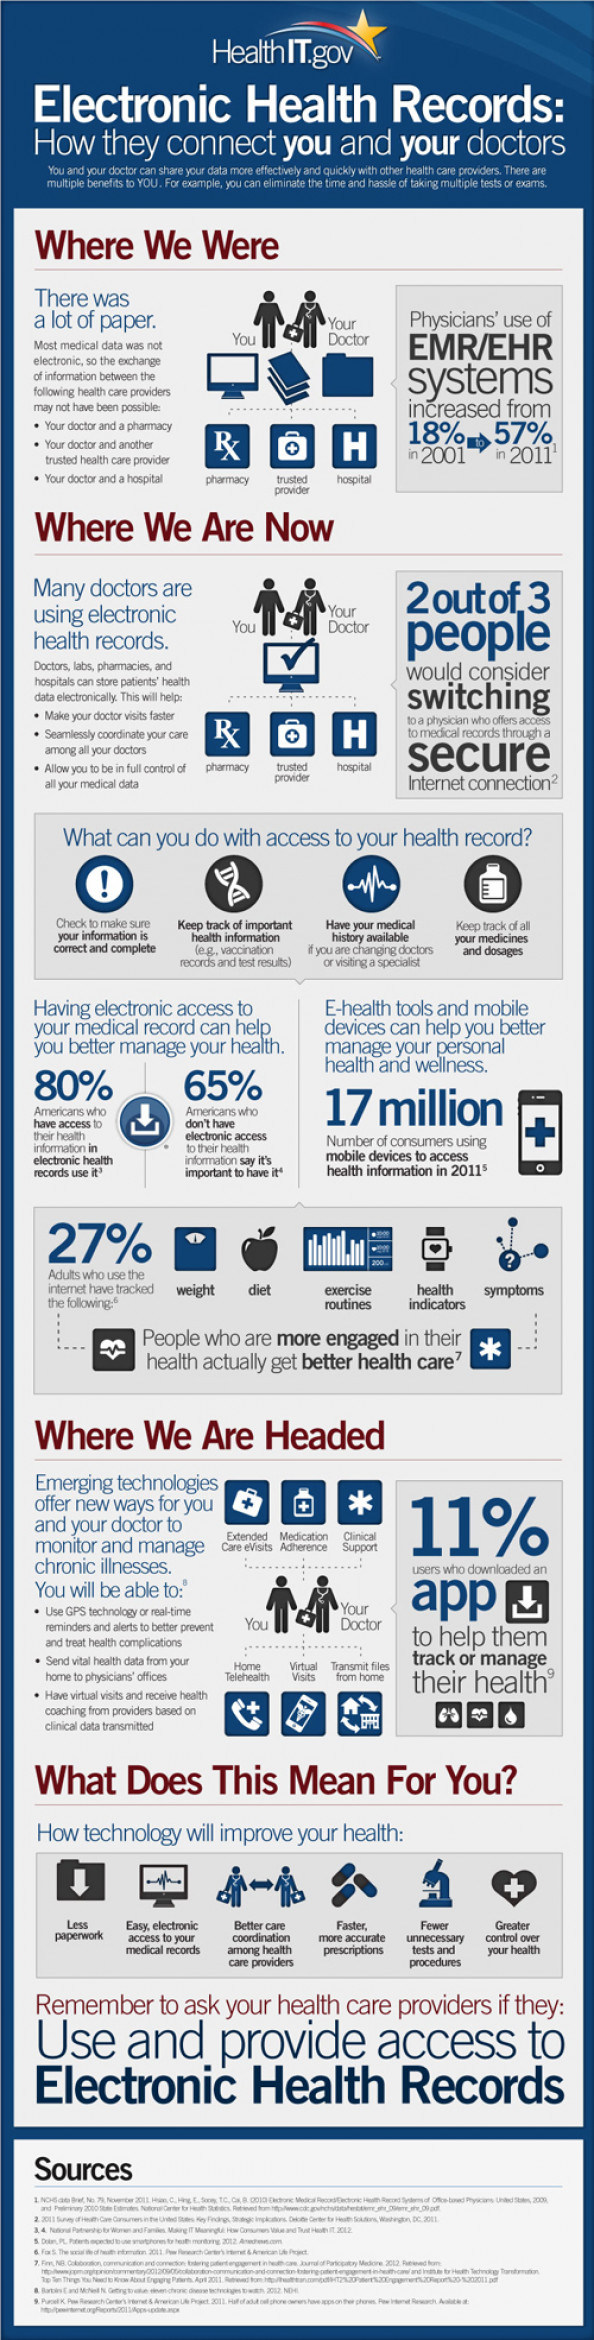 Electronic Health Records: How They Connect to You and Your Doctors Infographic